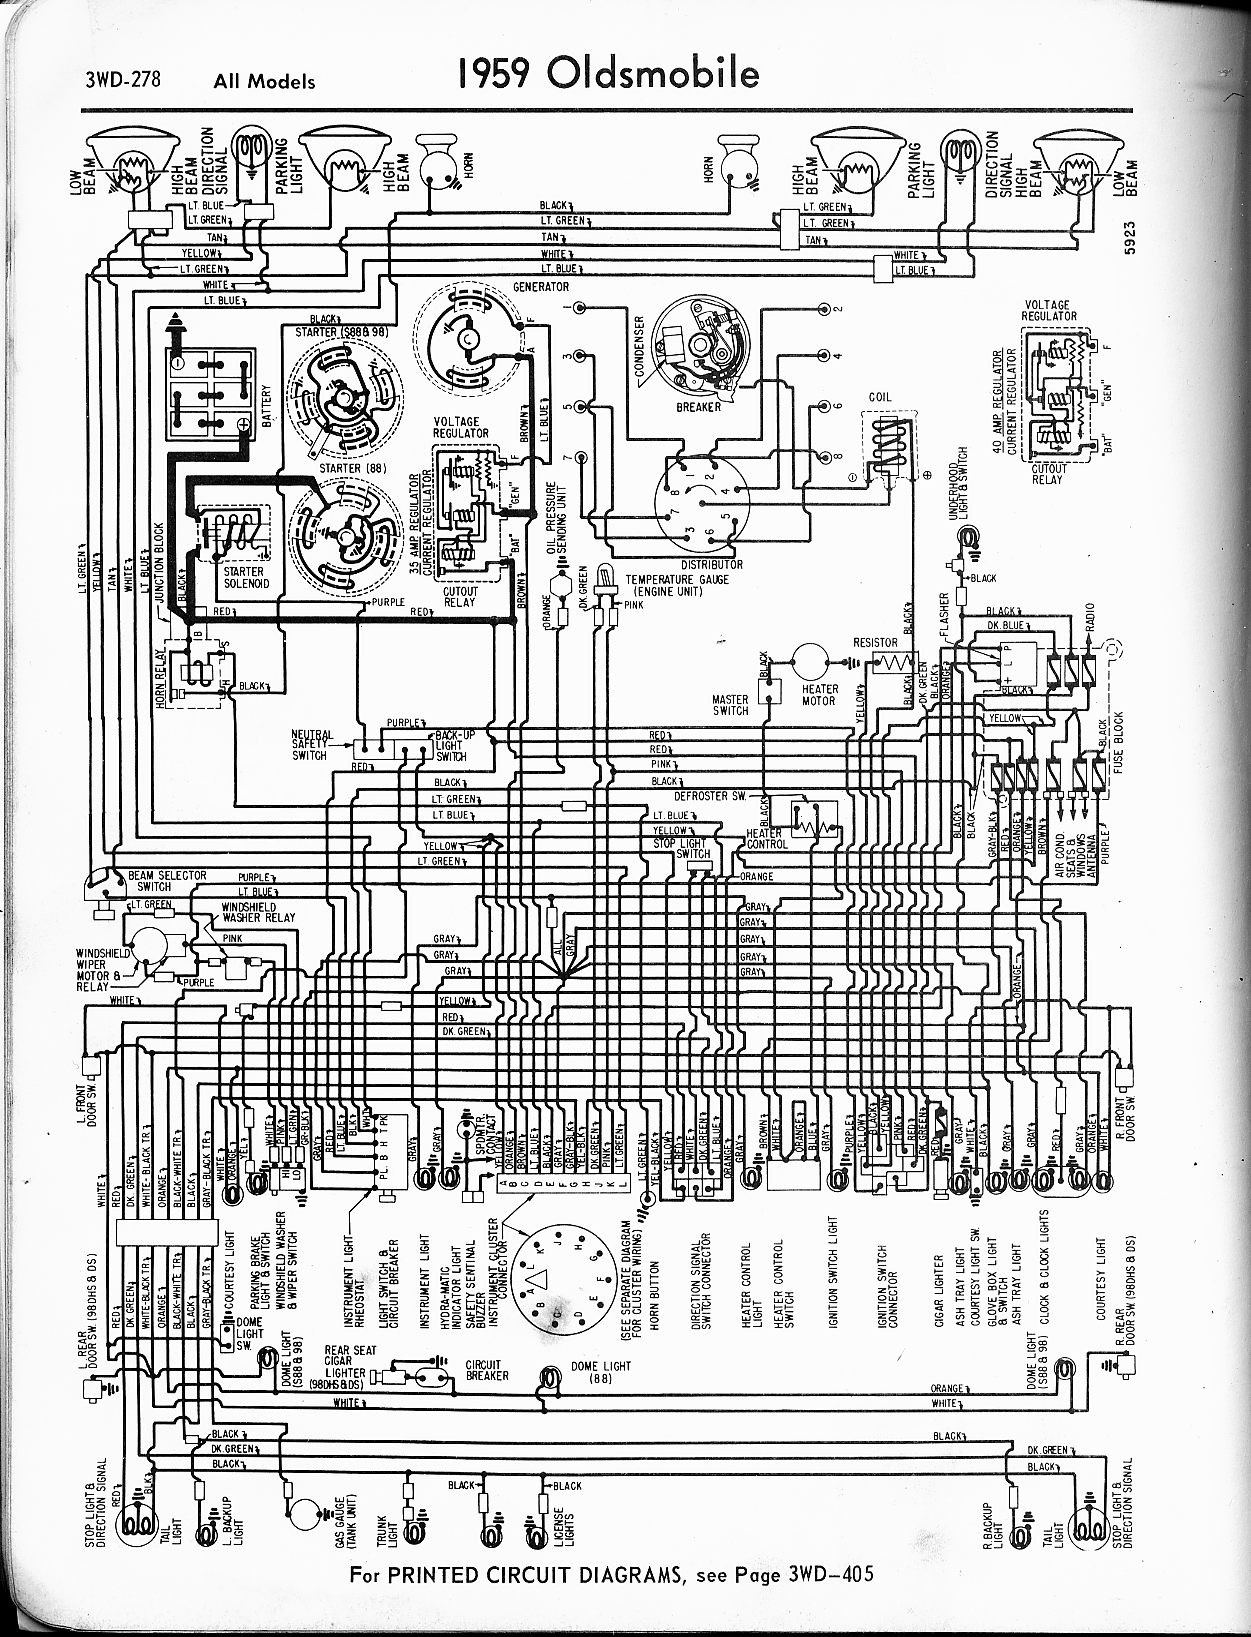 1997 oldsmobile 88 wiring diagram general wiring diagram information u2022 rh ethosguitars co uk 1997 oldsmobile 88 wiring diagram 1997 oldsmobile 88 wiring diagram